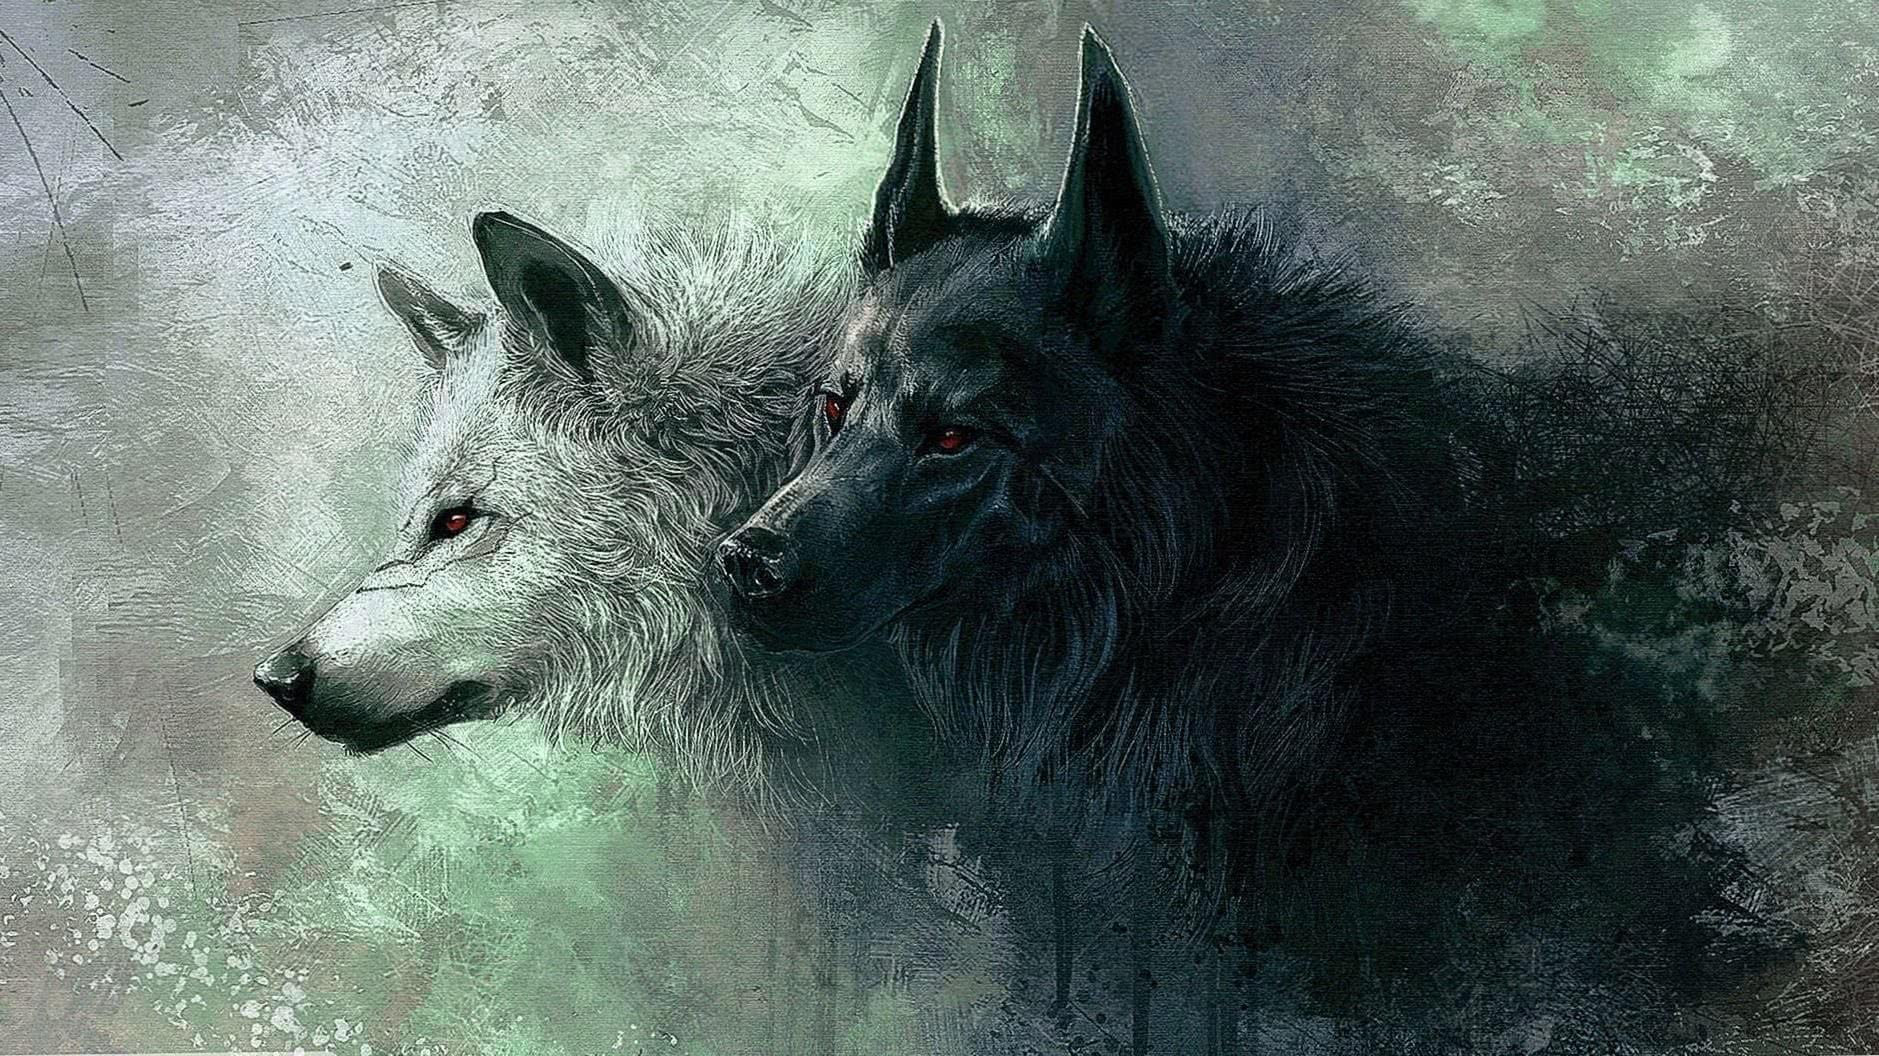 HD Wallpapers For PC Wolf